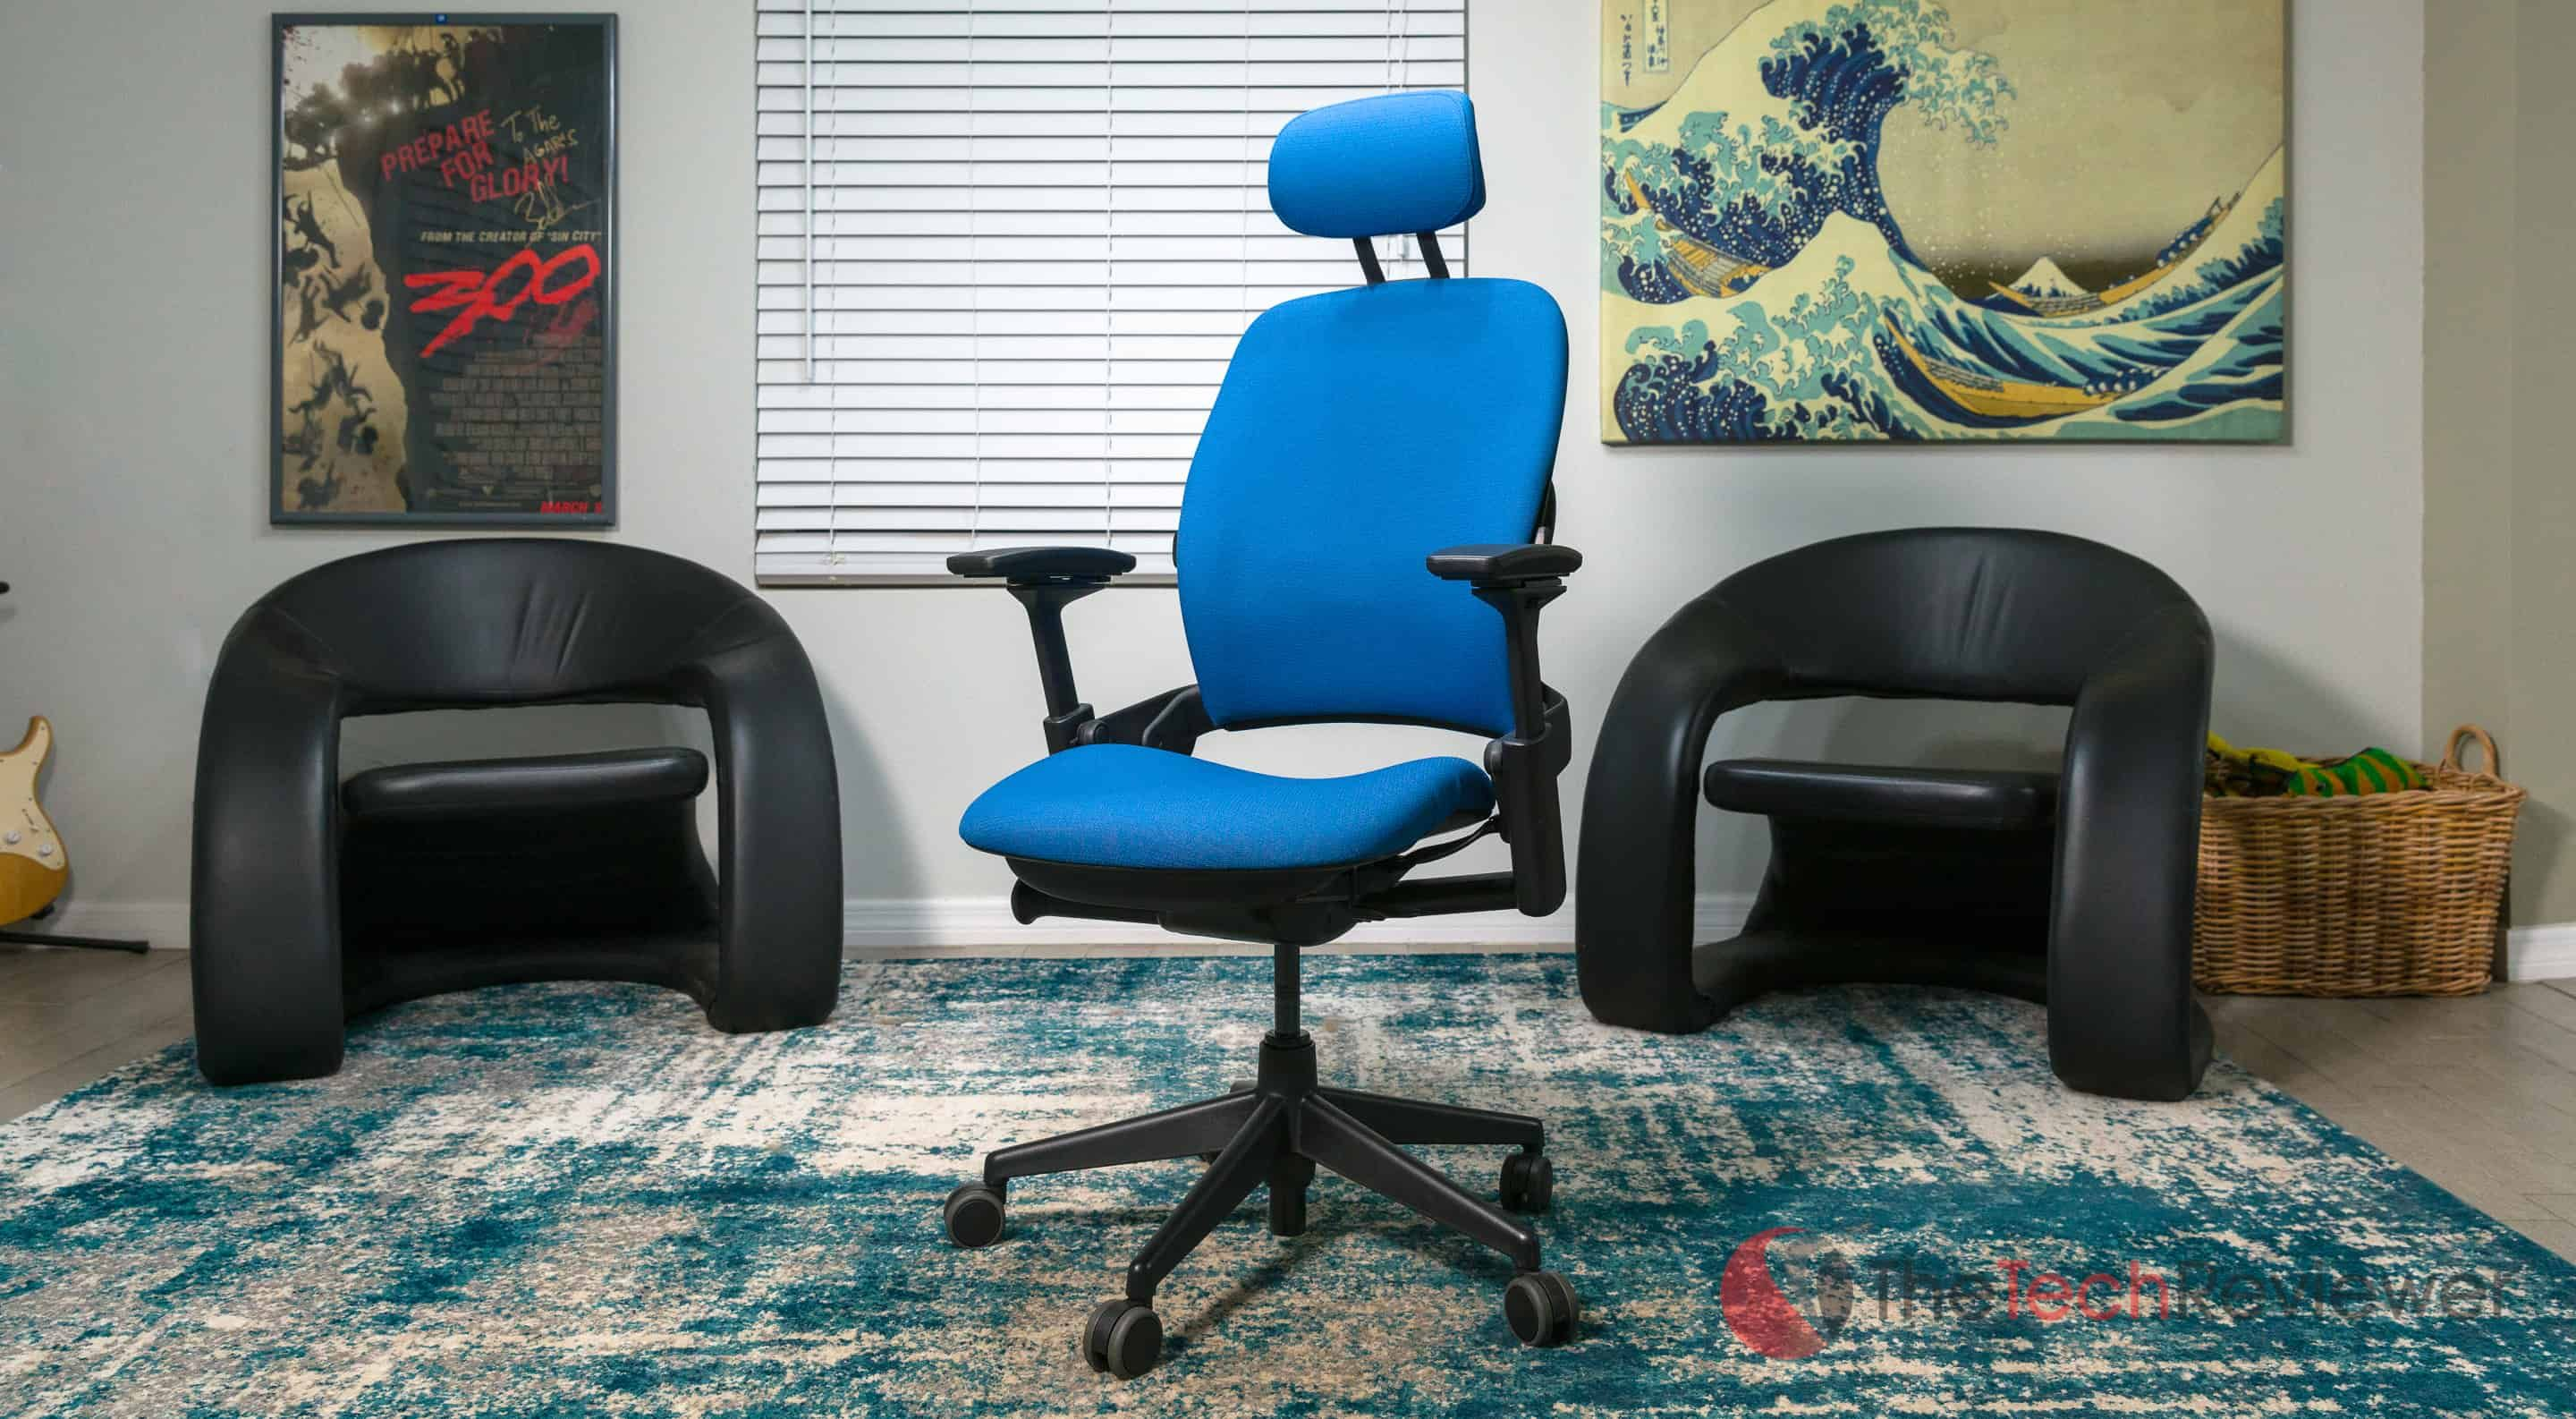 Steelcase Leap V2 Review Office Chair Worth It In 2020?